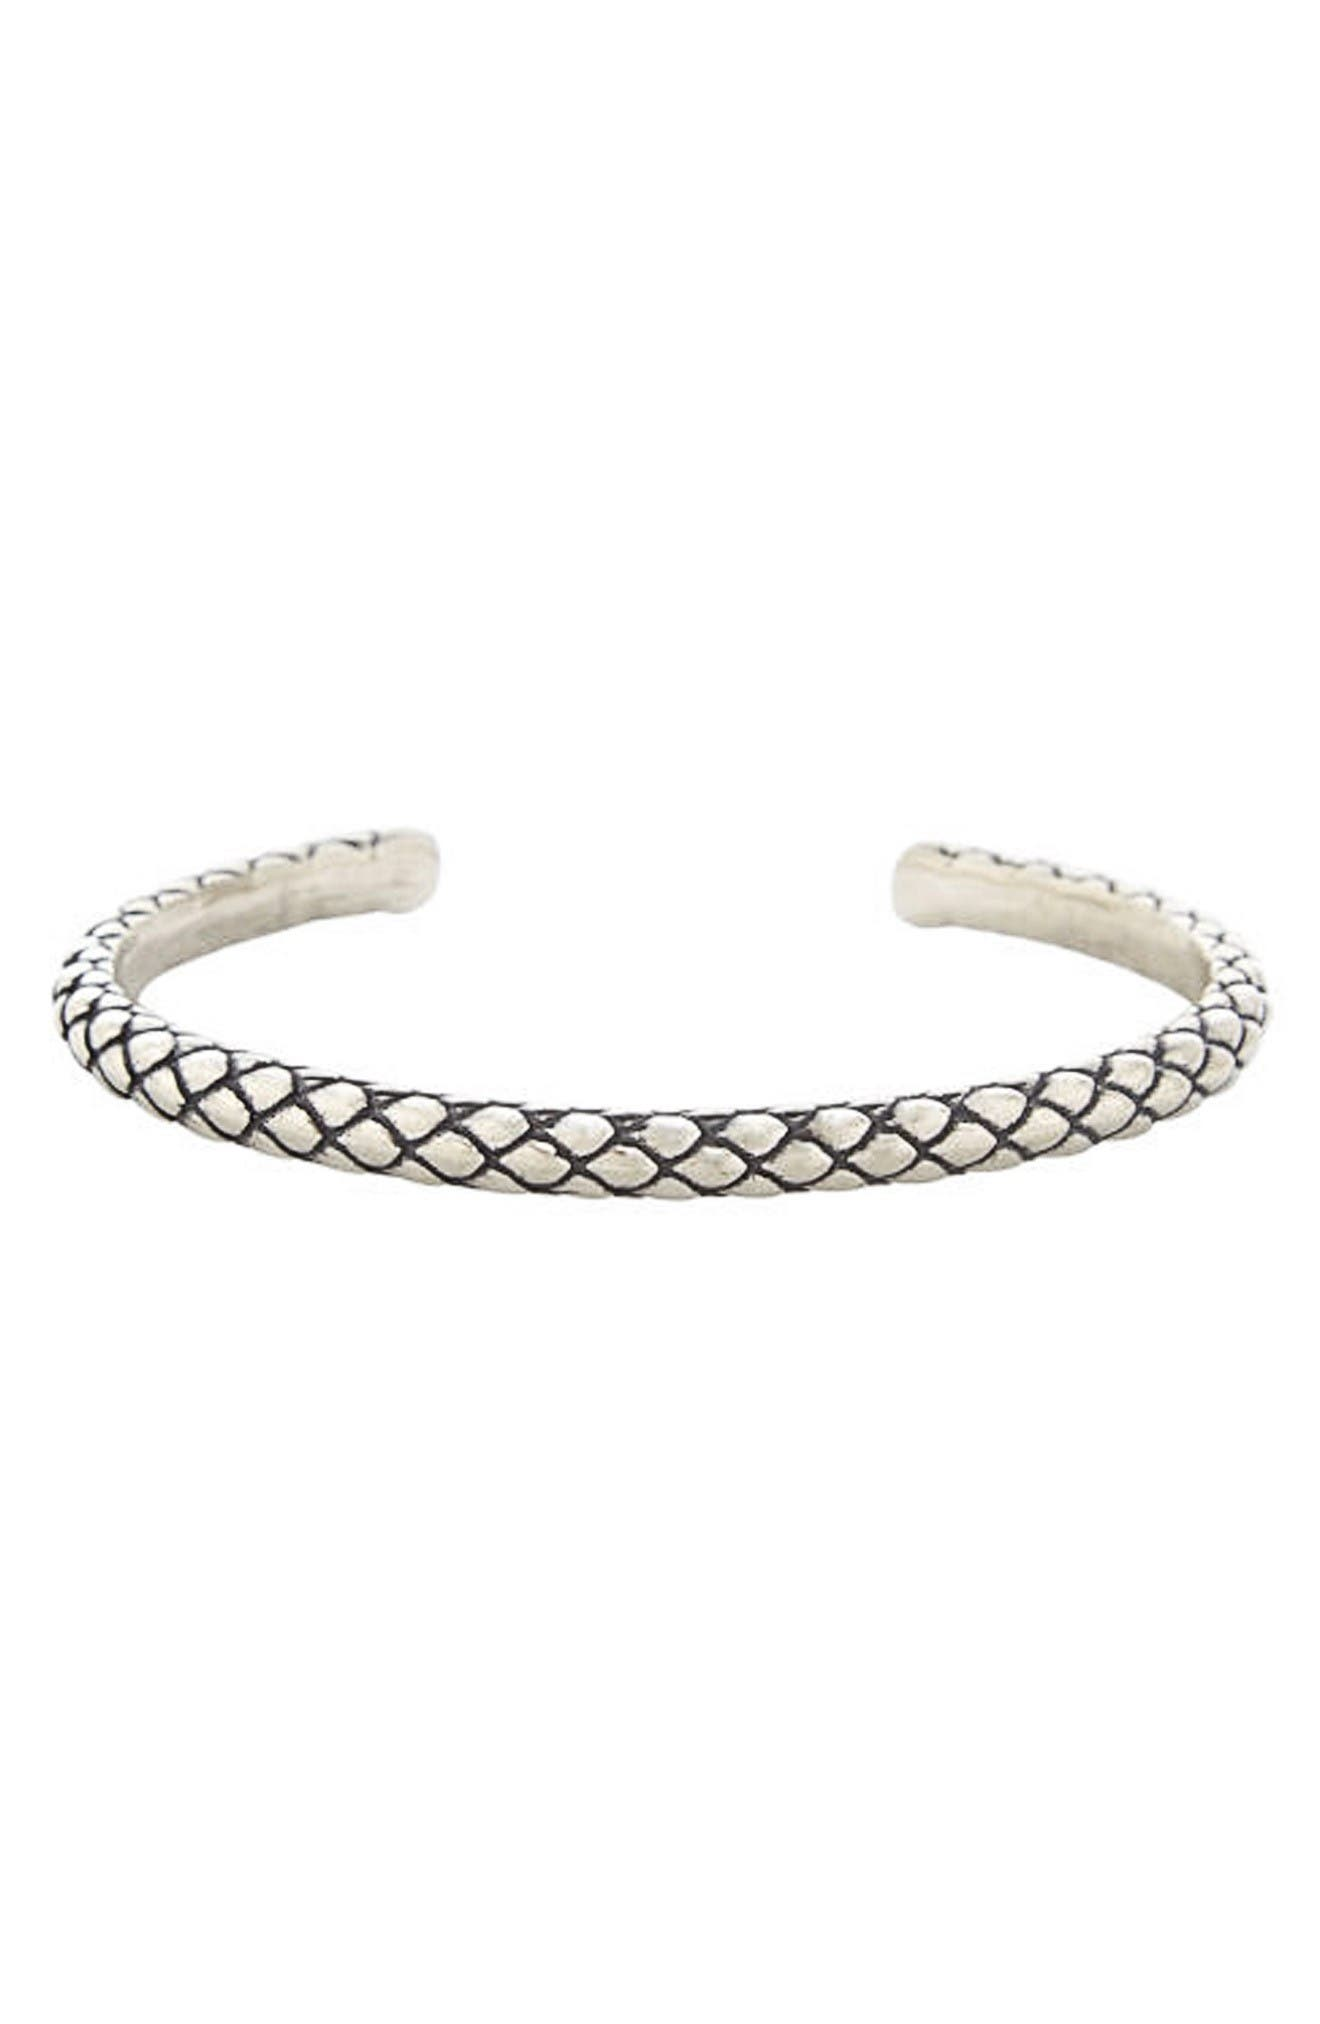 Stealth Cuff Bracelet,                             Main thumbnail 1, color,                             Silver